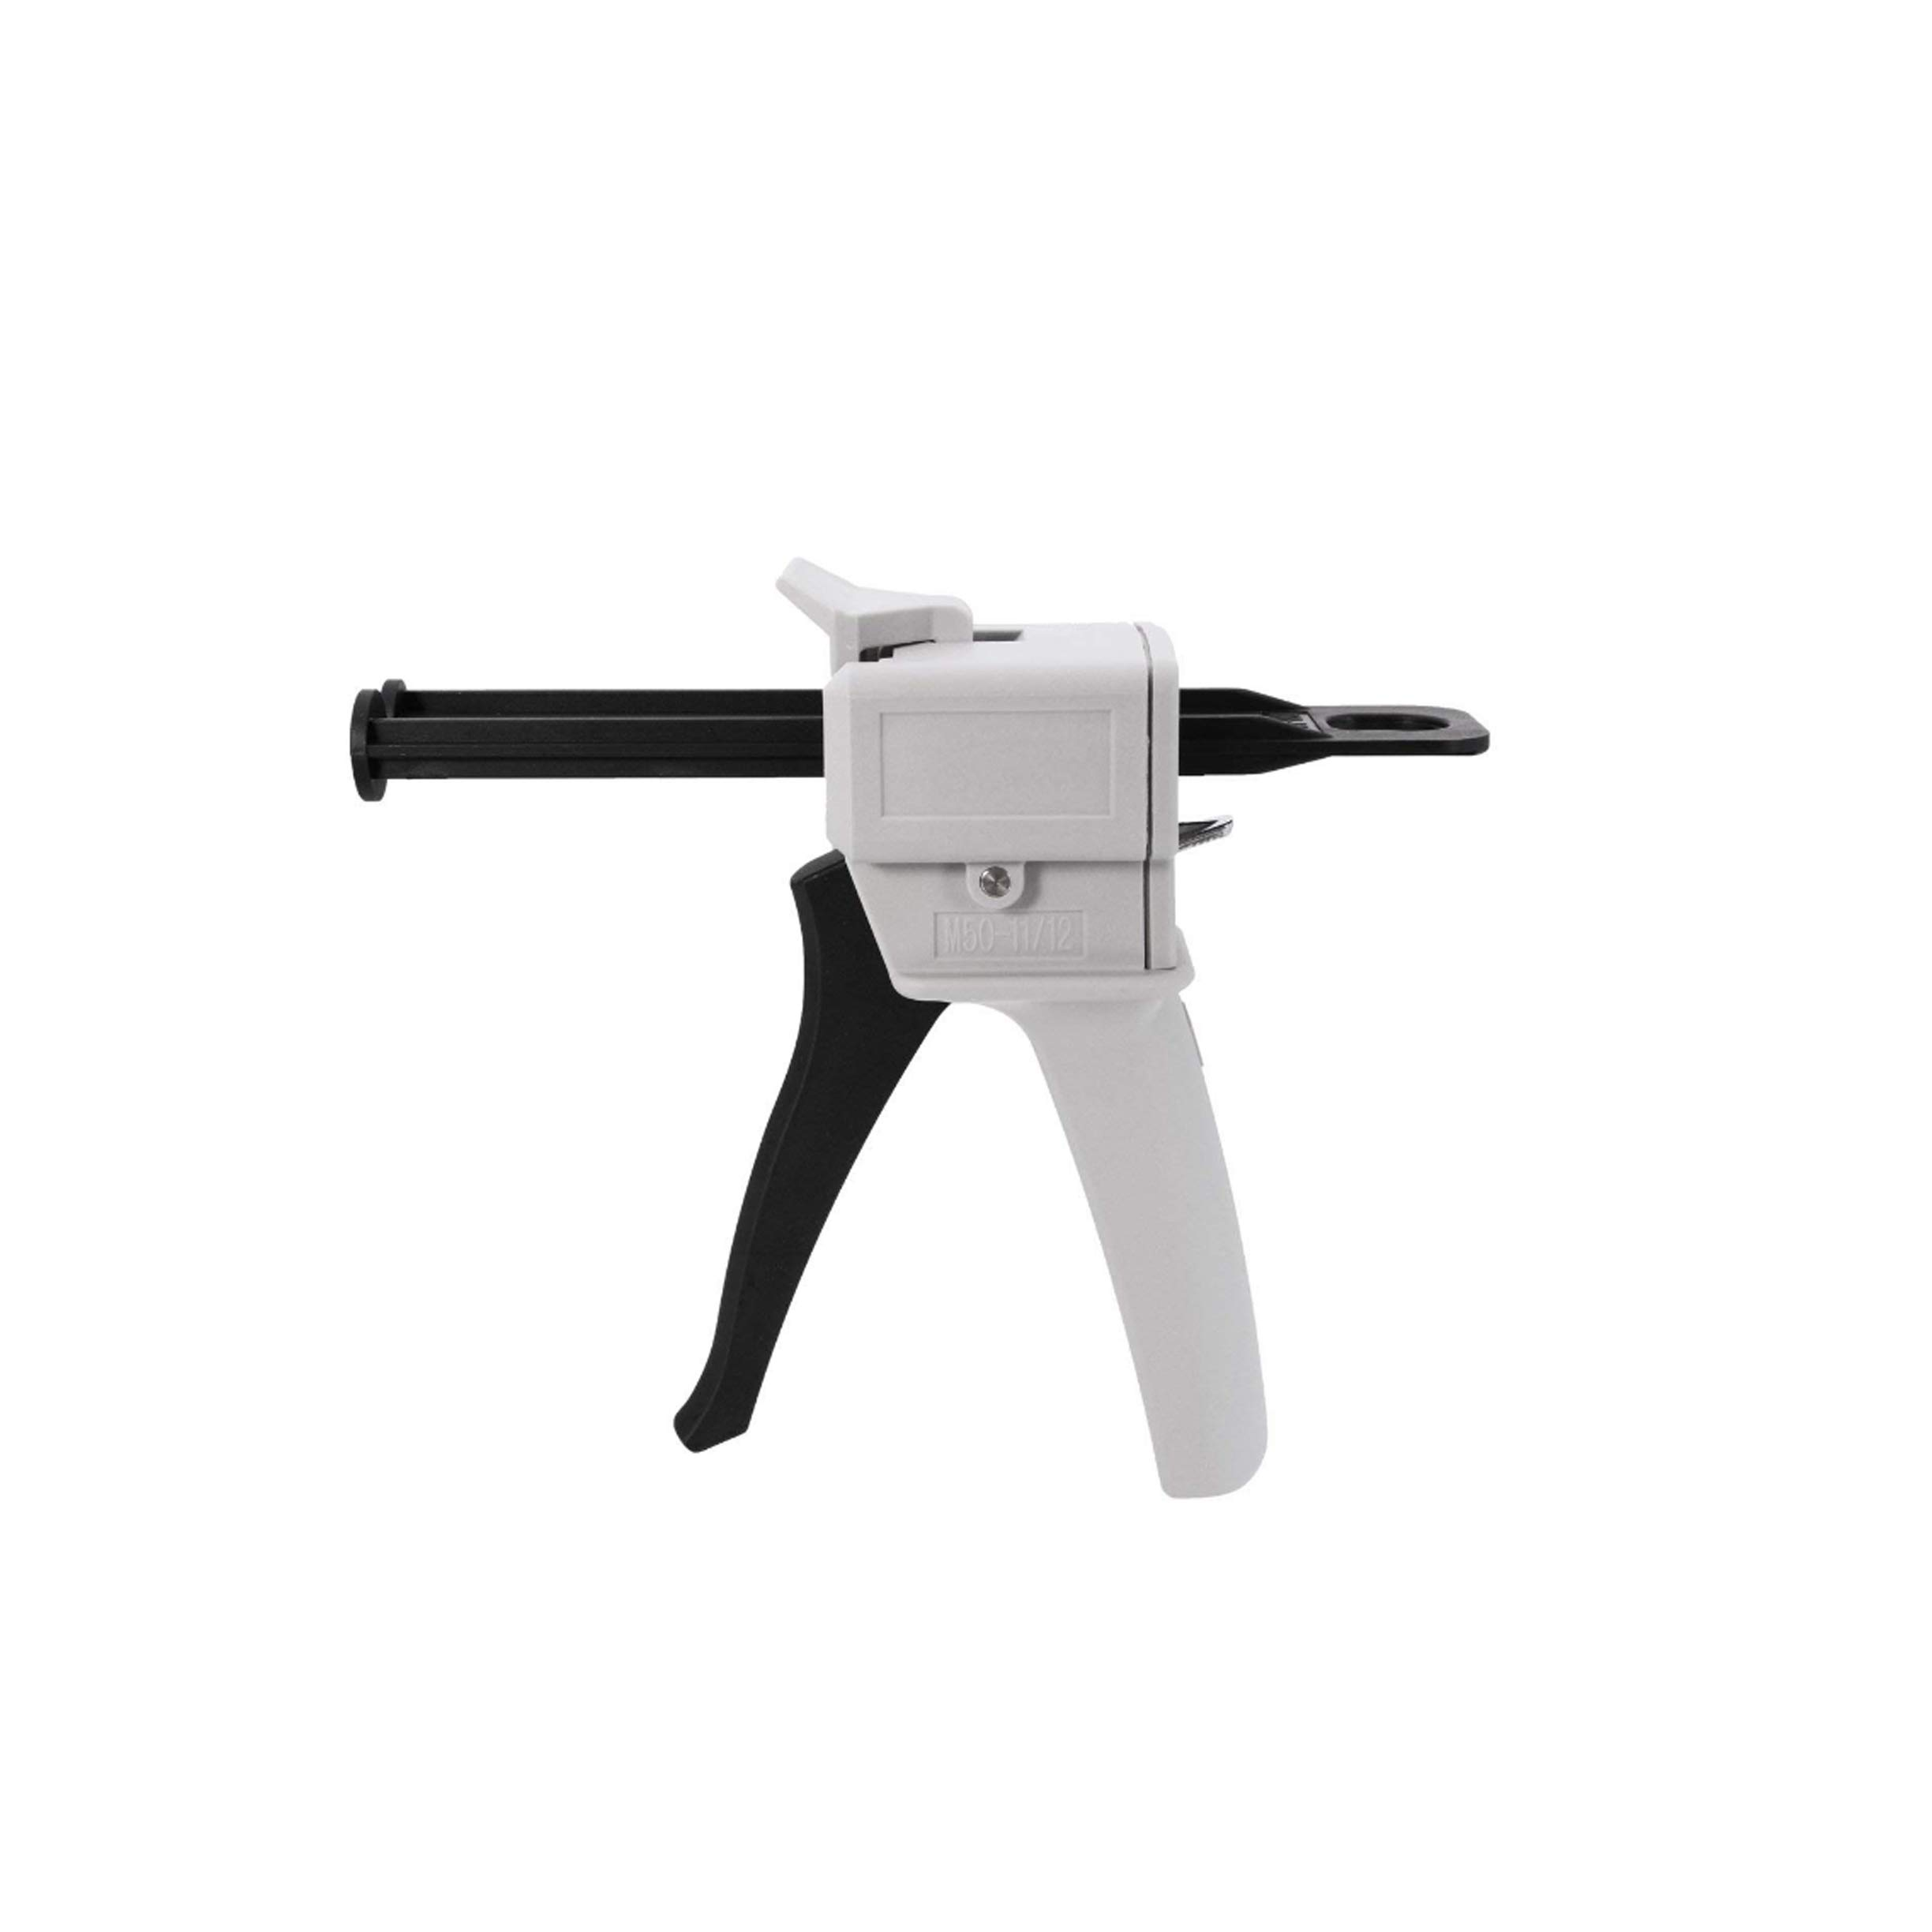 Hand-Operated Glue Gun for Mixed 1:1 or 1:2 AB Epoxy Glue for DIY Arts Crafts Projects and Small Repair Jobs 50ml